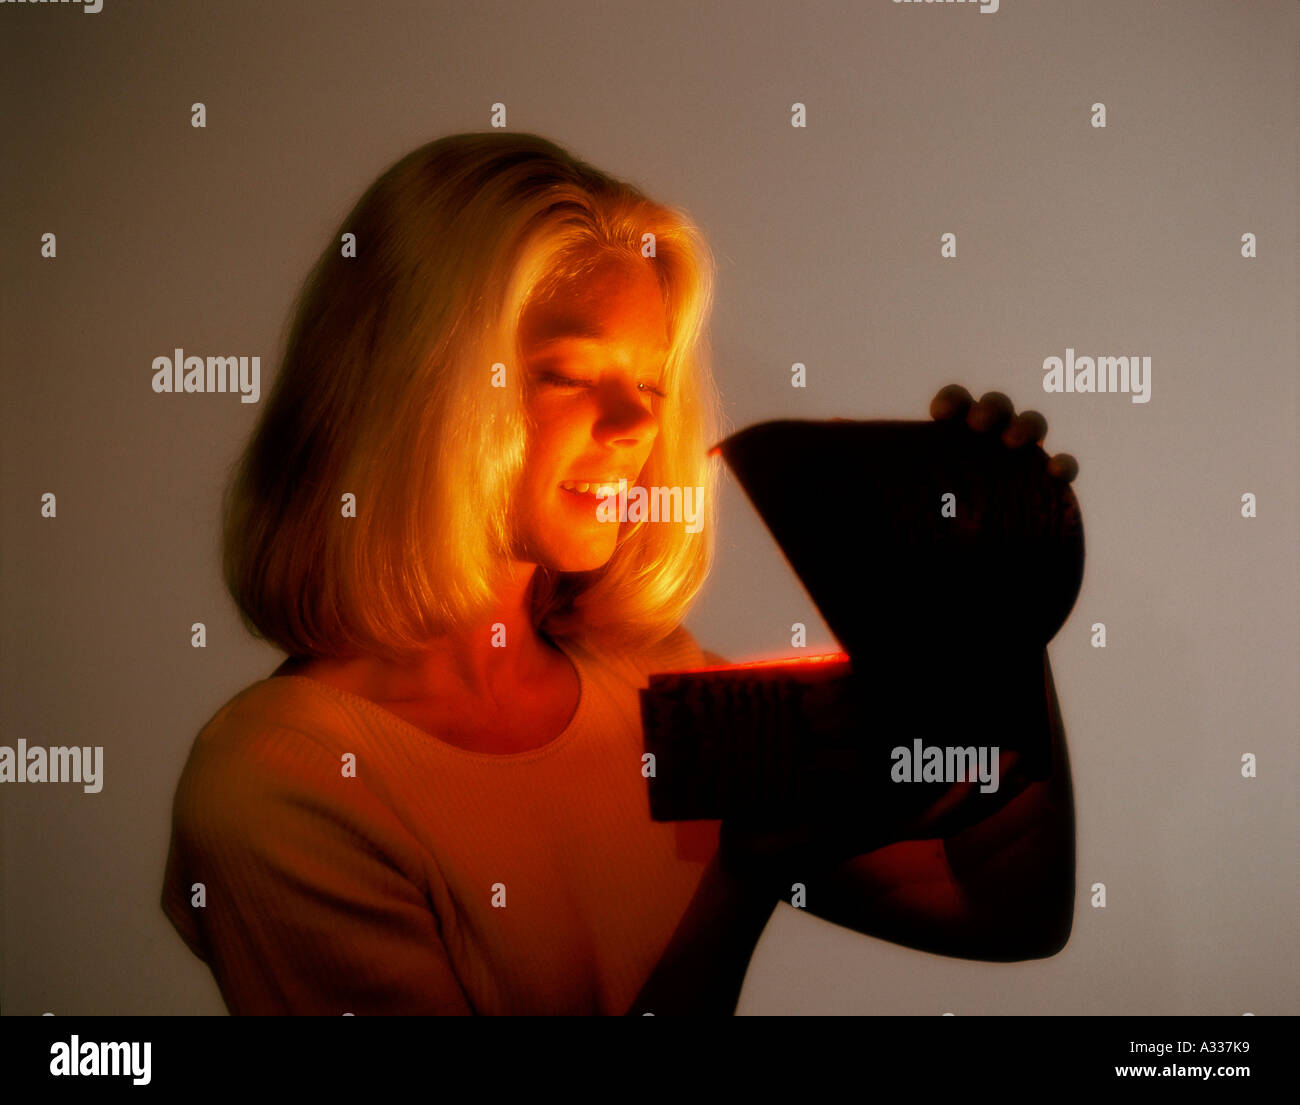 Mysterious glowing box A98 - Stock Image